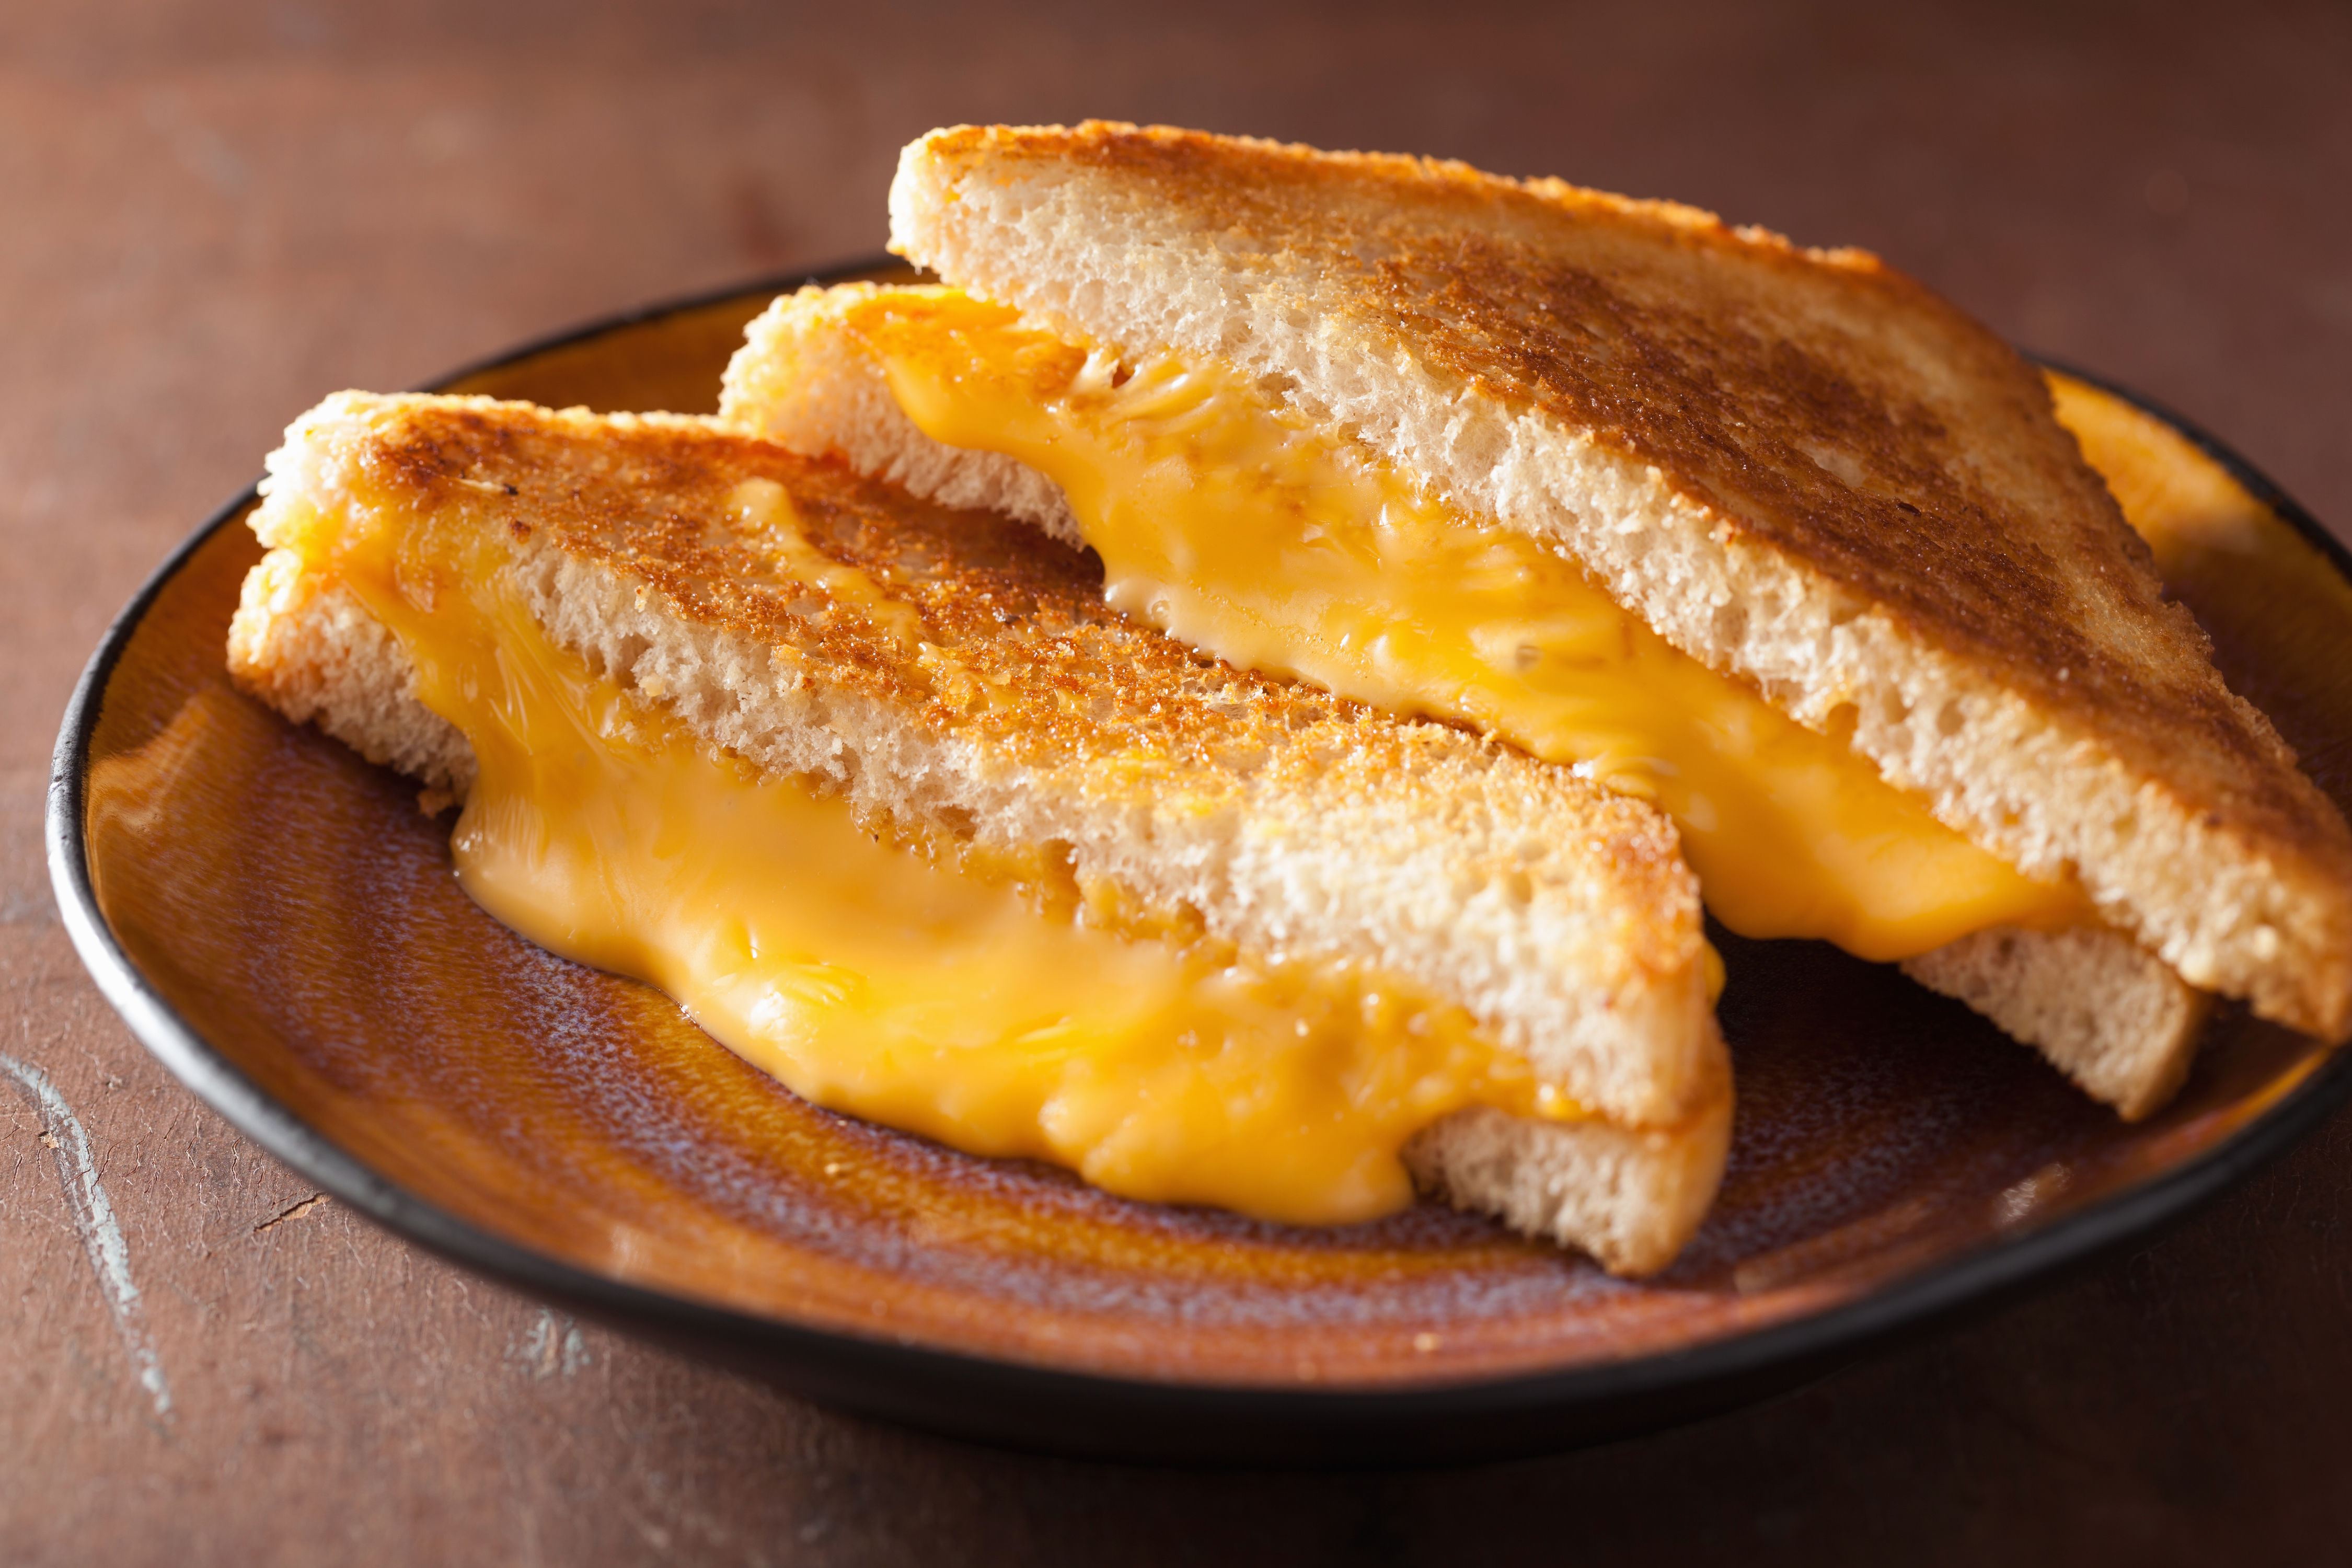 American Cheese Sales Are Melting Away. Here's Why